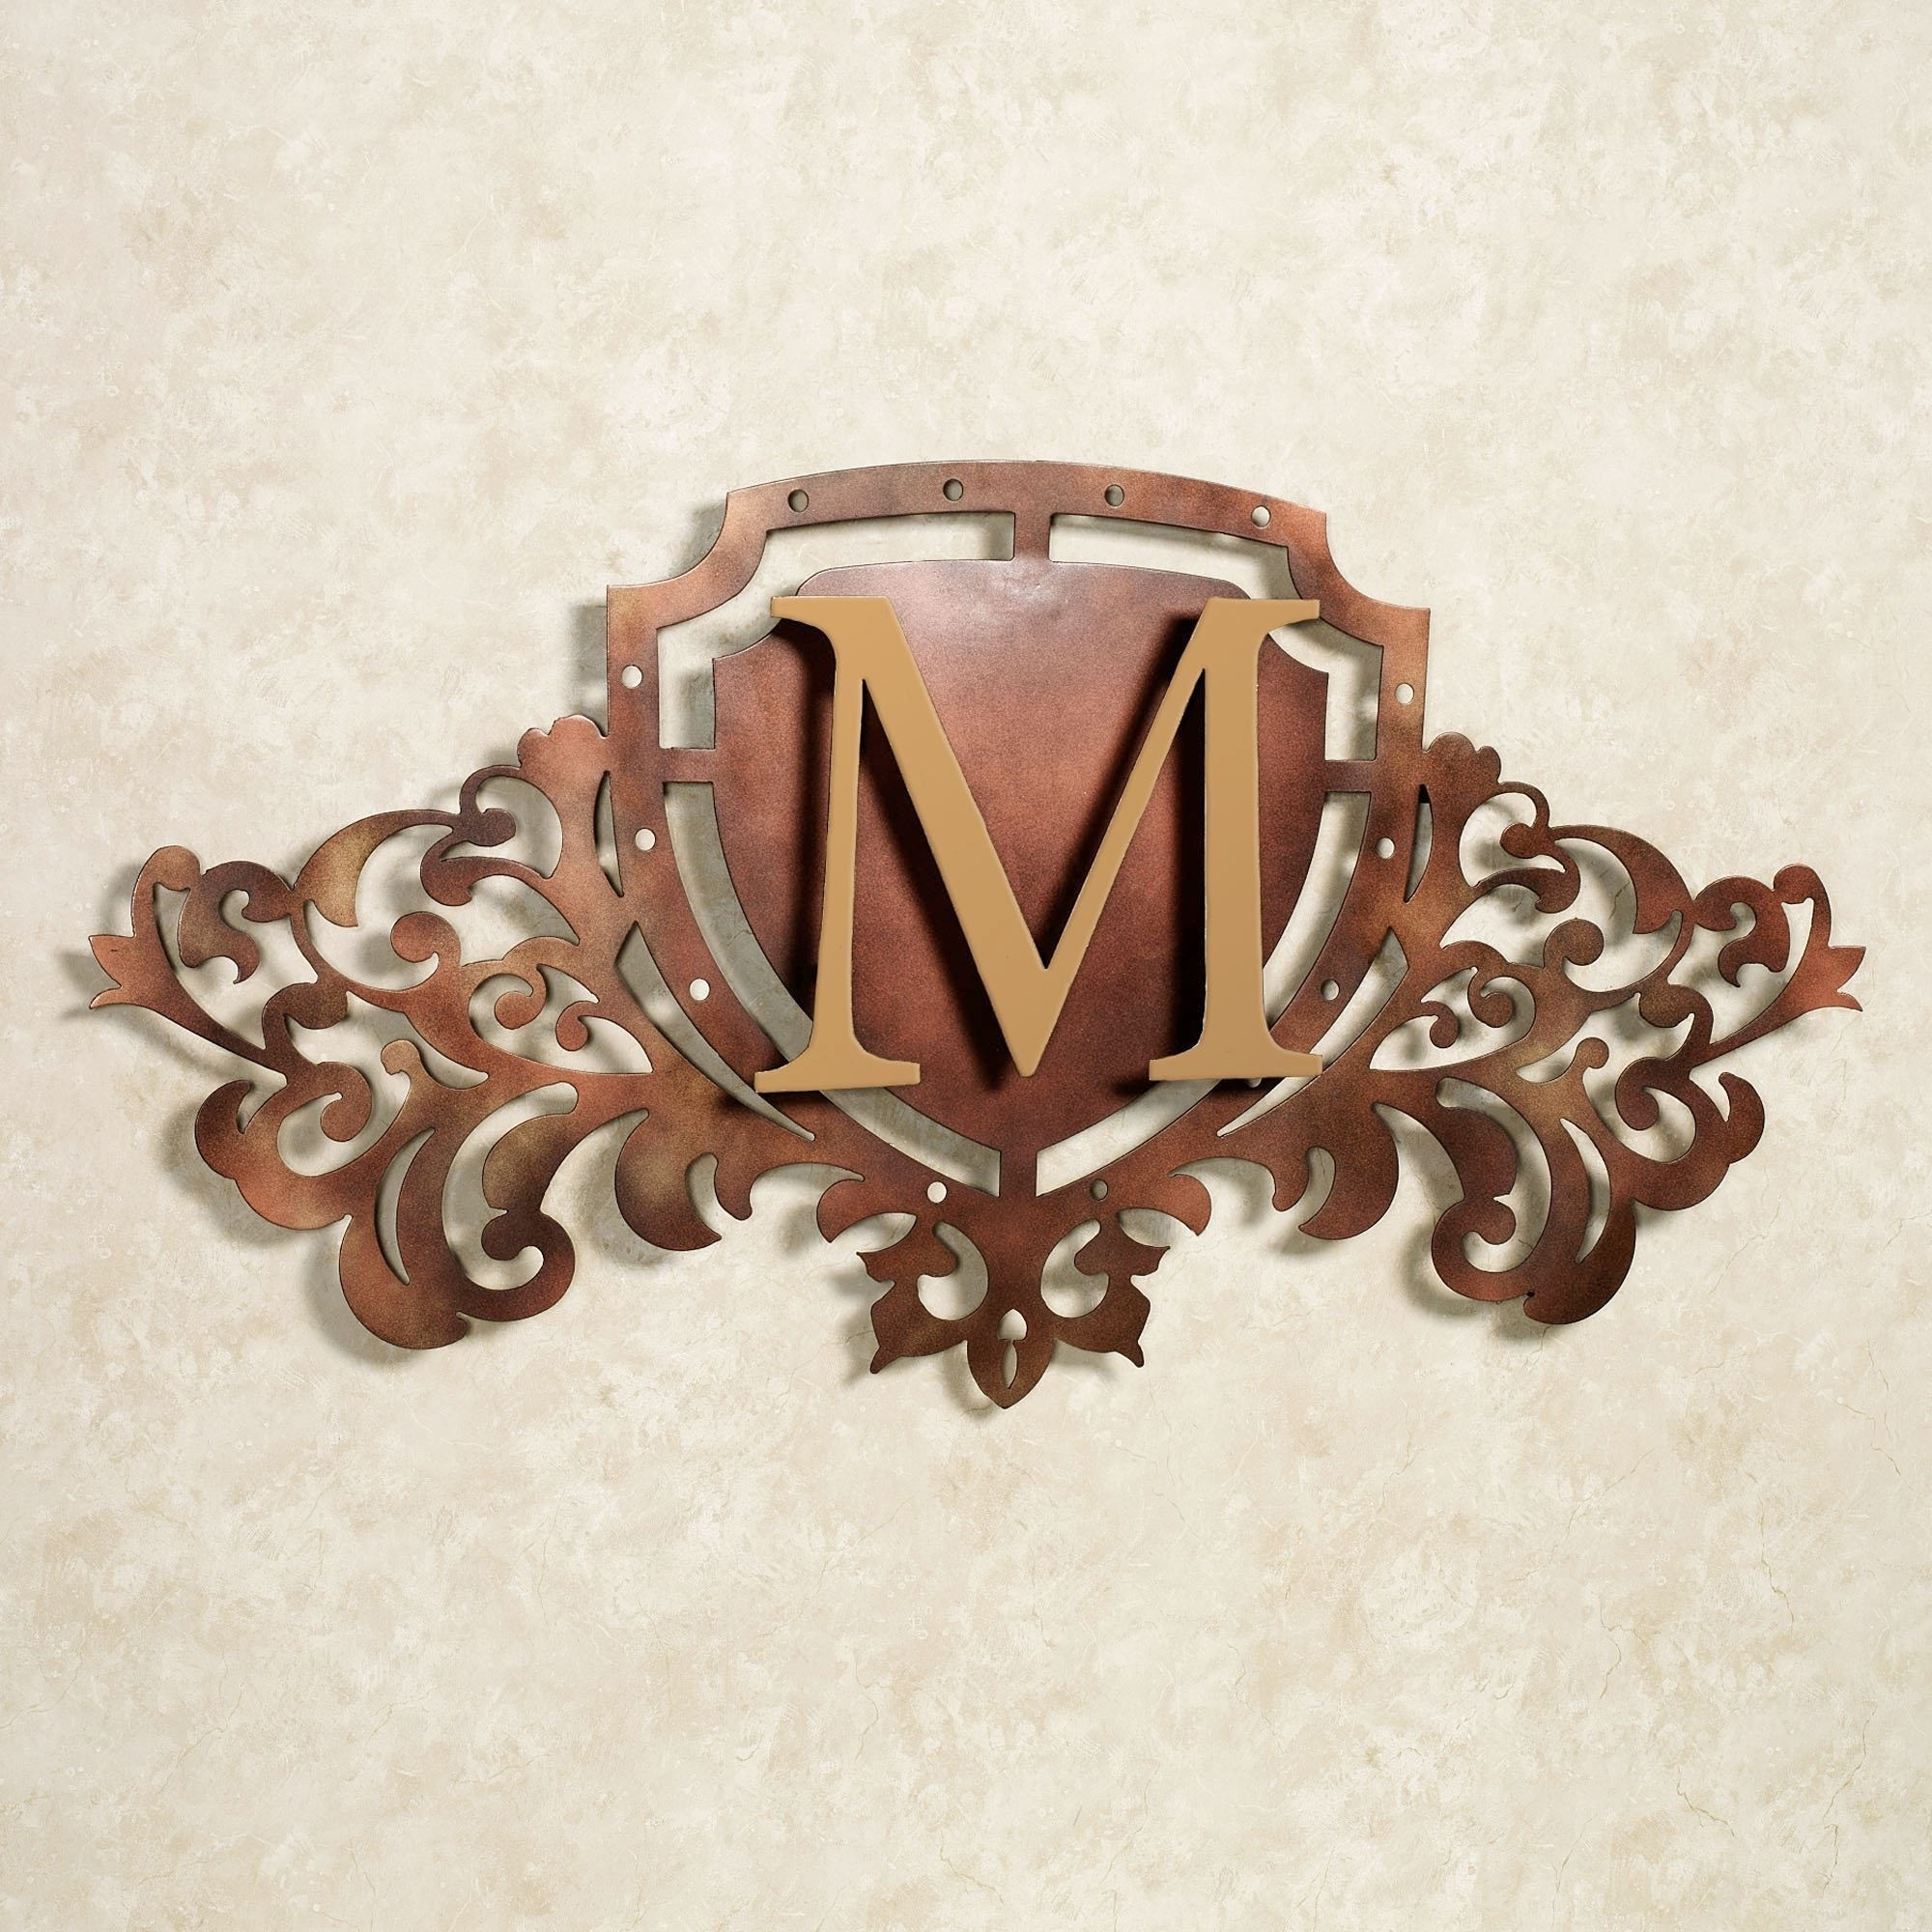 Generations Bronze Monogram Crest Metal Wall Art Sign With Best And Newest Bronze Wall Art (View 9 of 20)